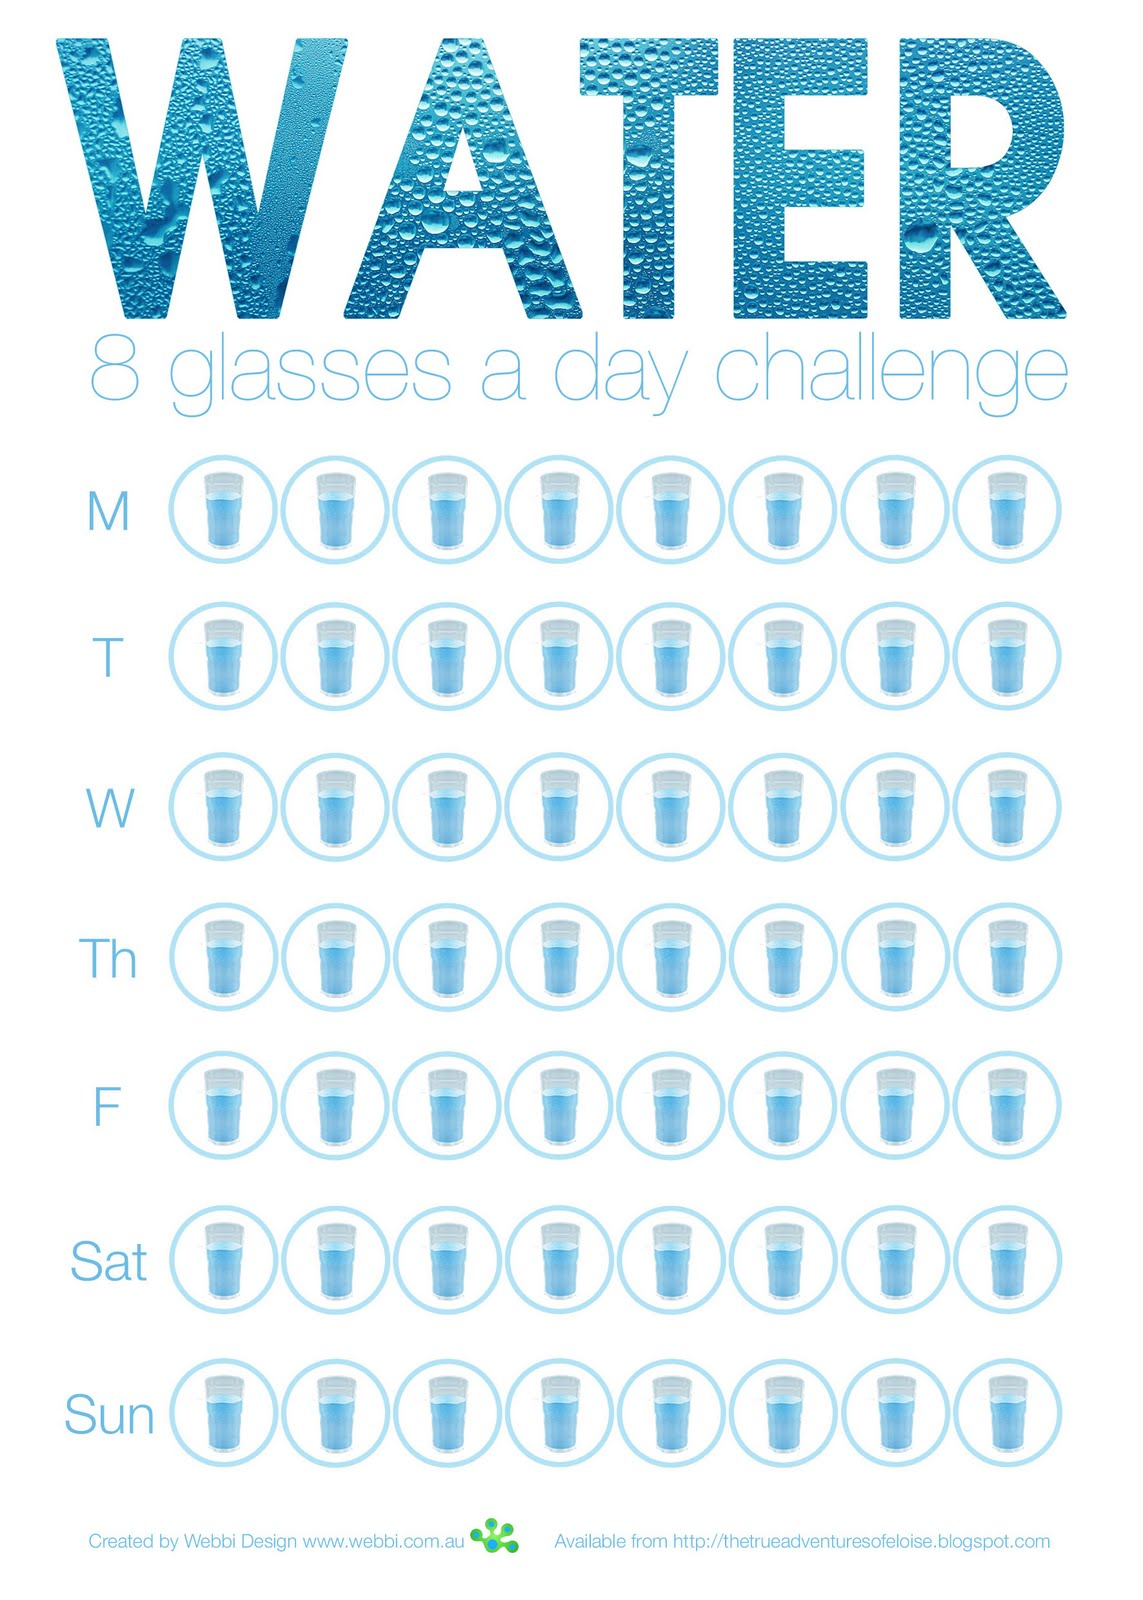 Most liquids you drink count towards the total including tea coffee juice etc but obviously there are far more benefits from drinking water than also true adventures of eloise freebie list glasses  day rh thetrueadventuresofeloisespot